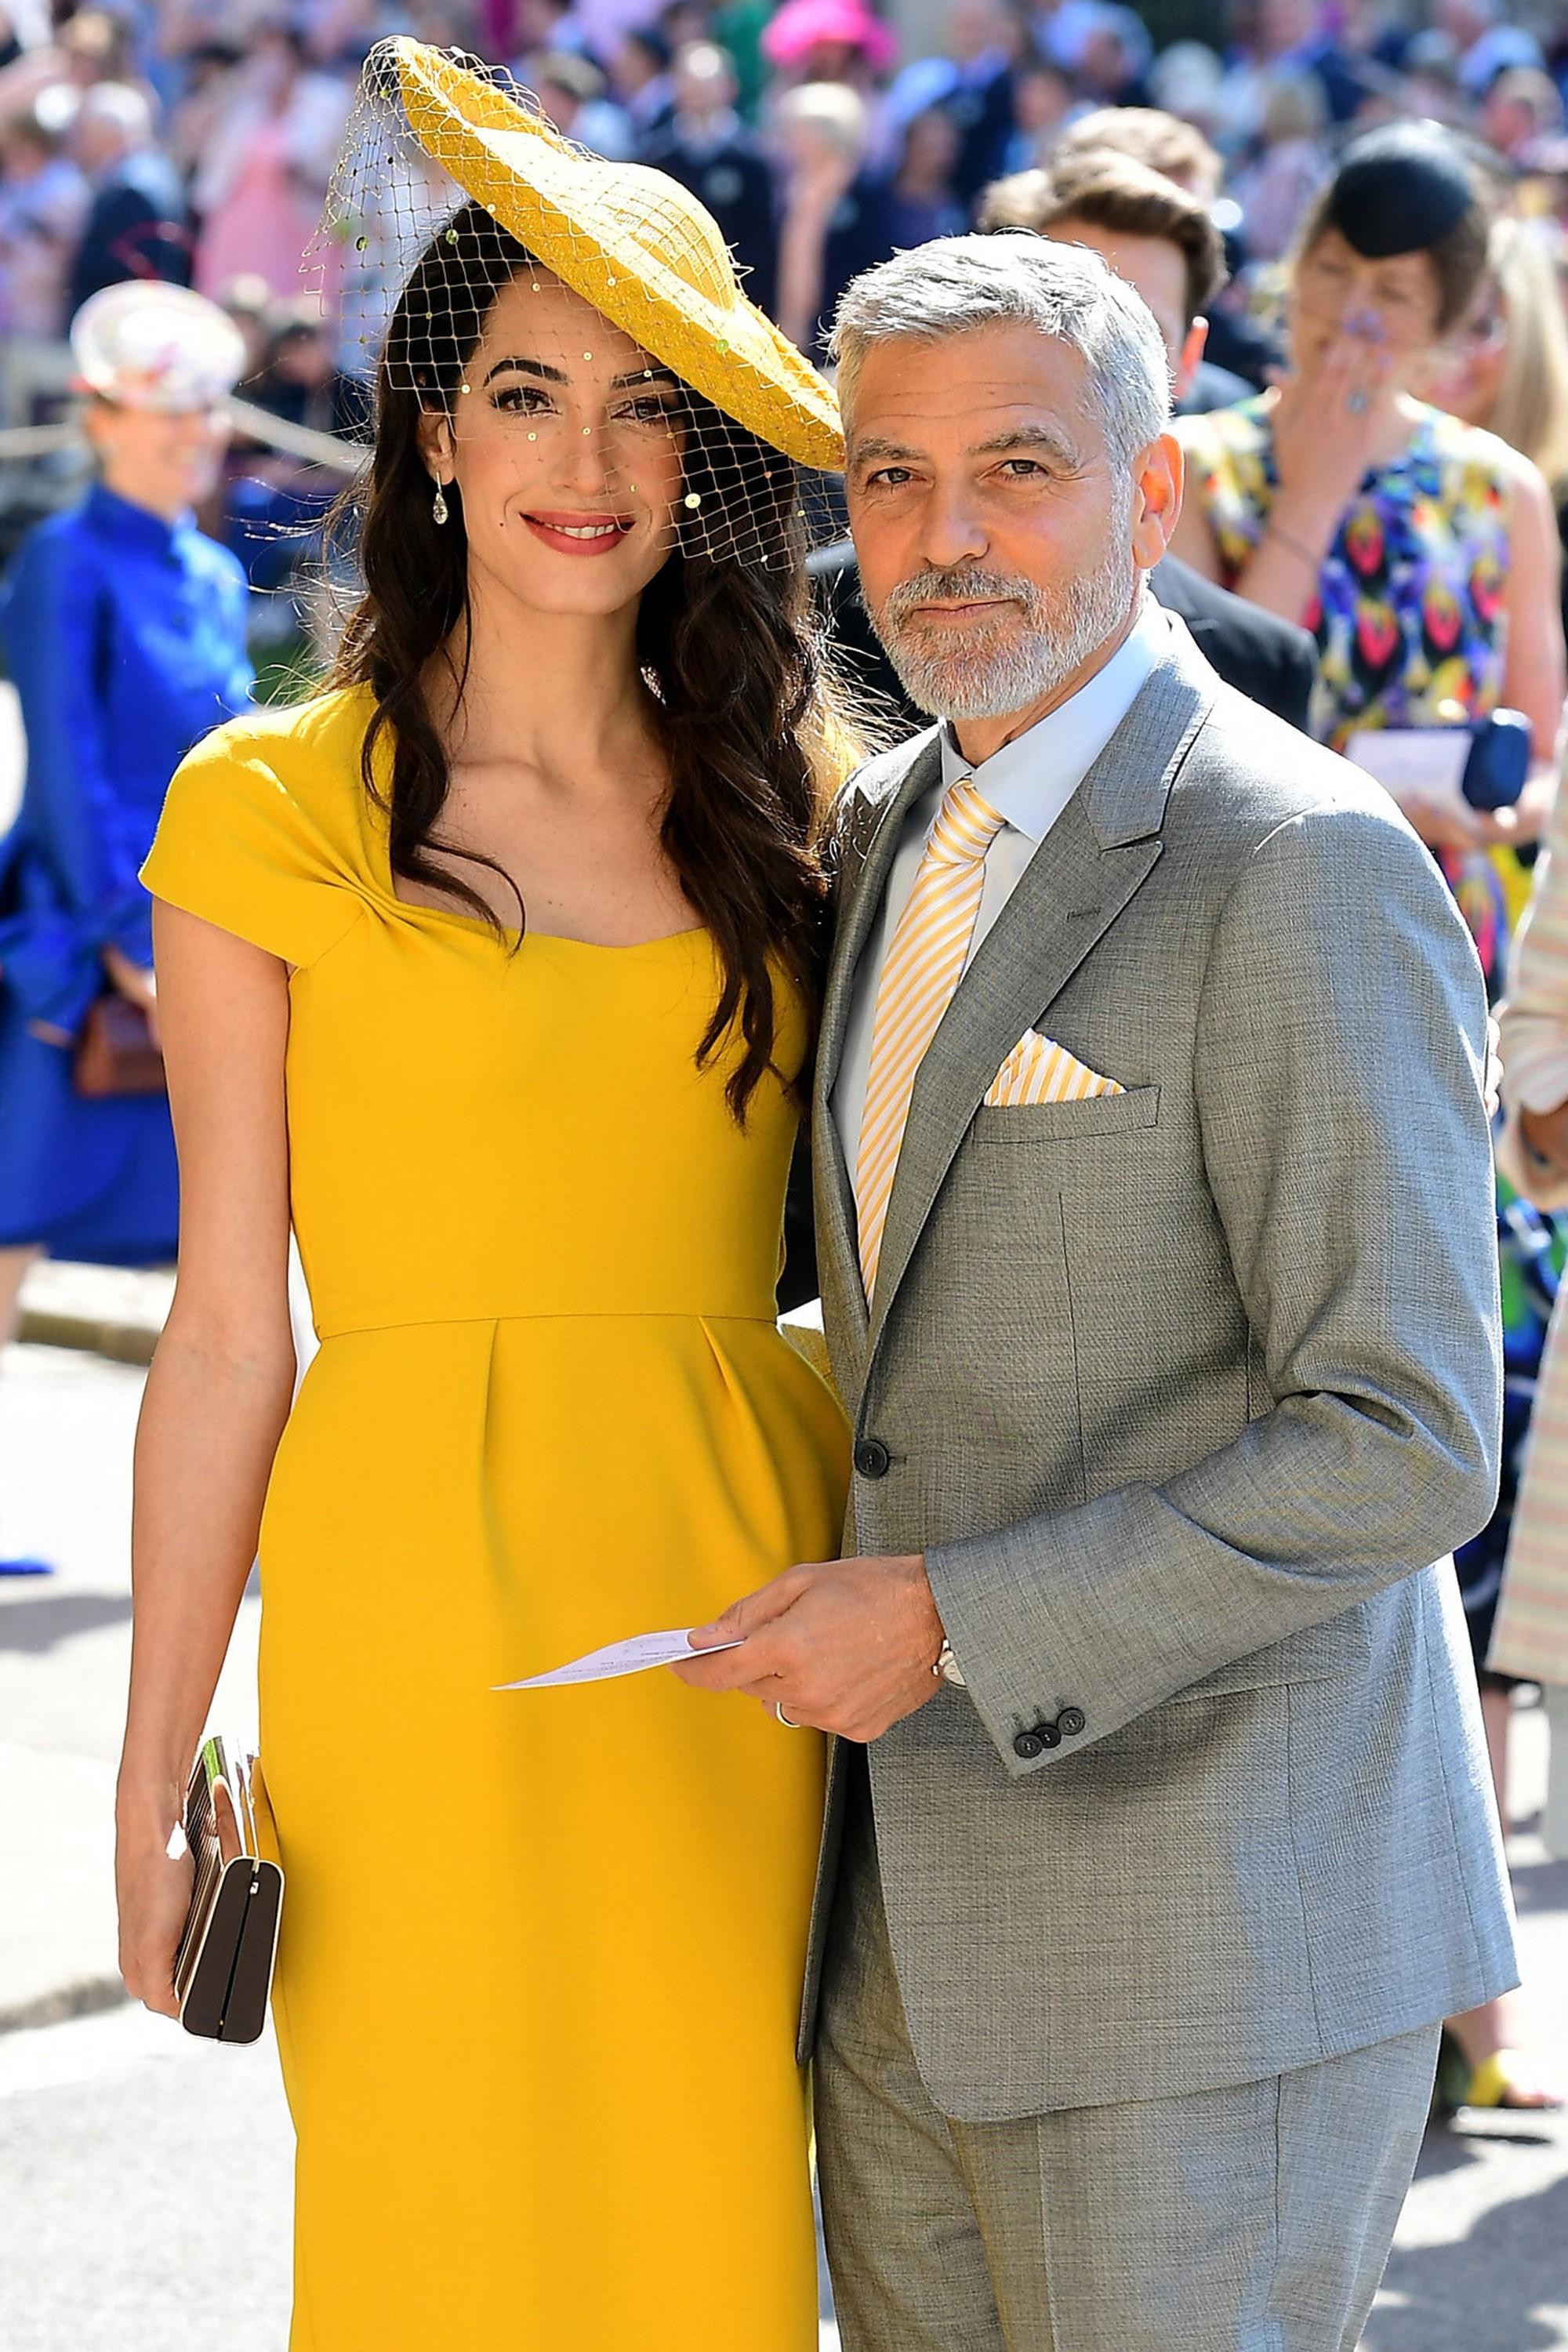 Amal Clooney e George Clooney no casamento real (Foto: Getty Images)